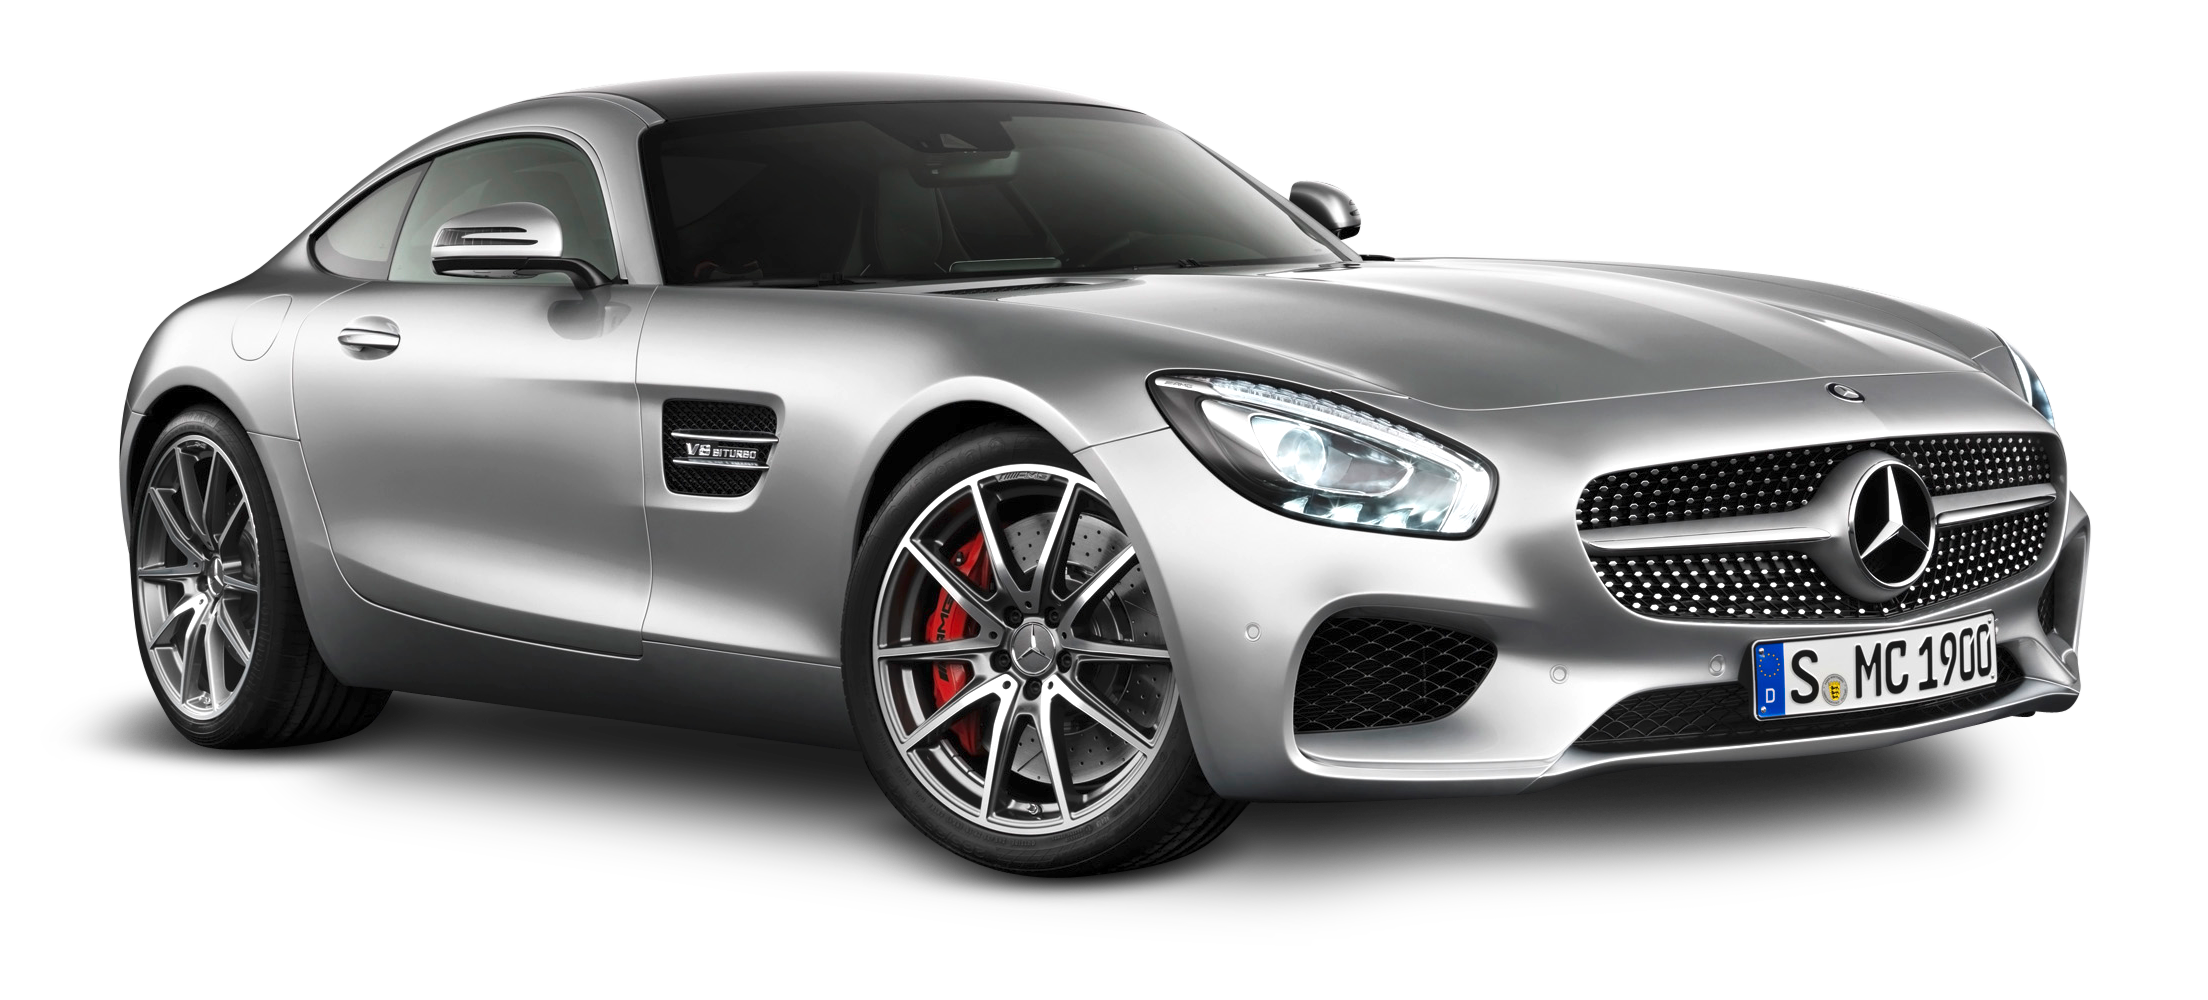 Luxury car clipart png free stock Mercedes AMG GT Luxury Car PNG Image - PurePNG | Free transparent ... png free stock